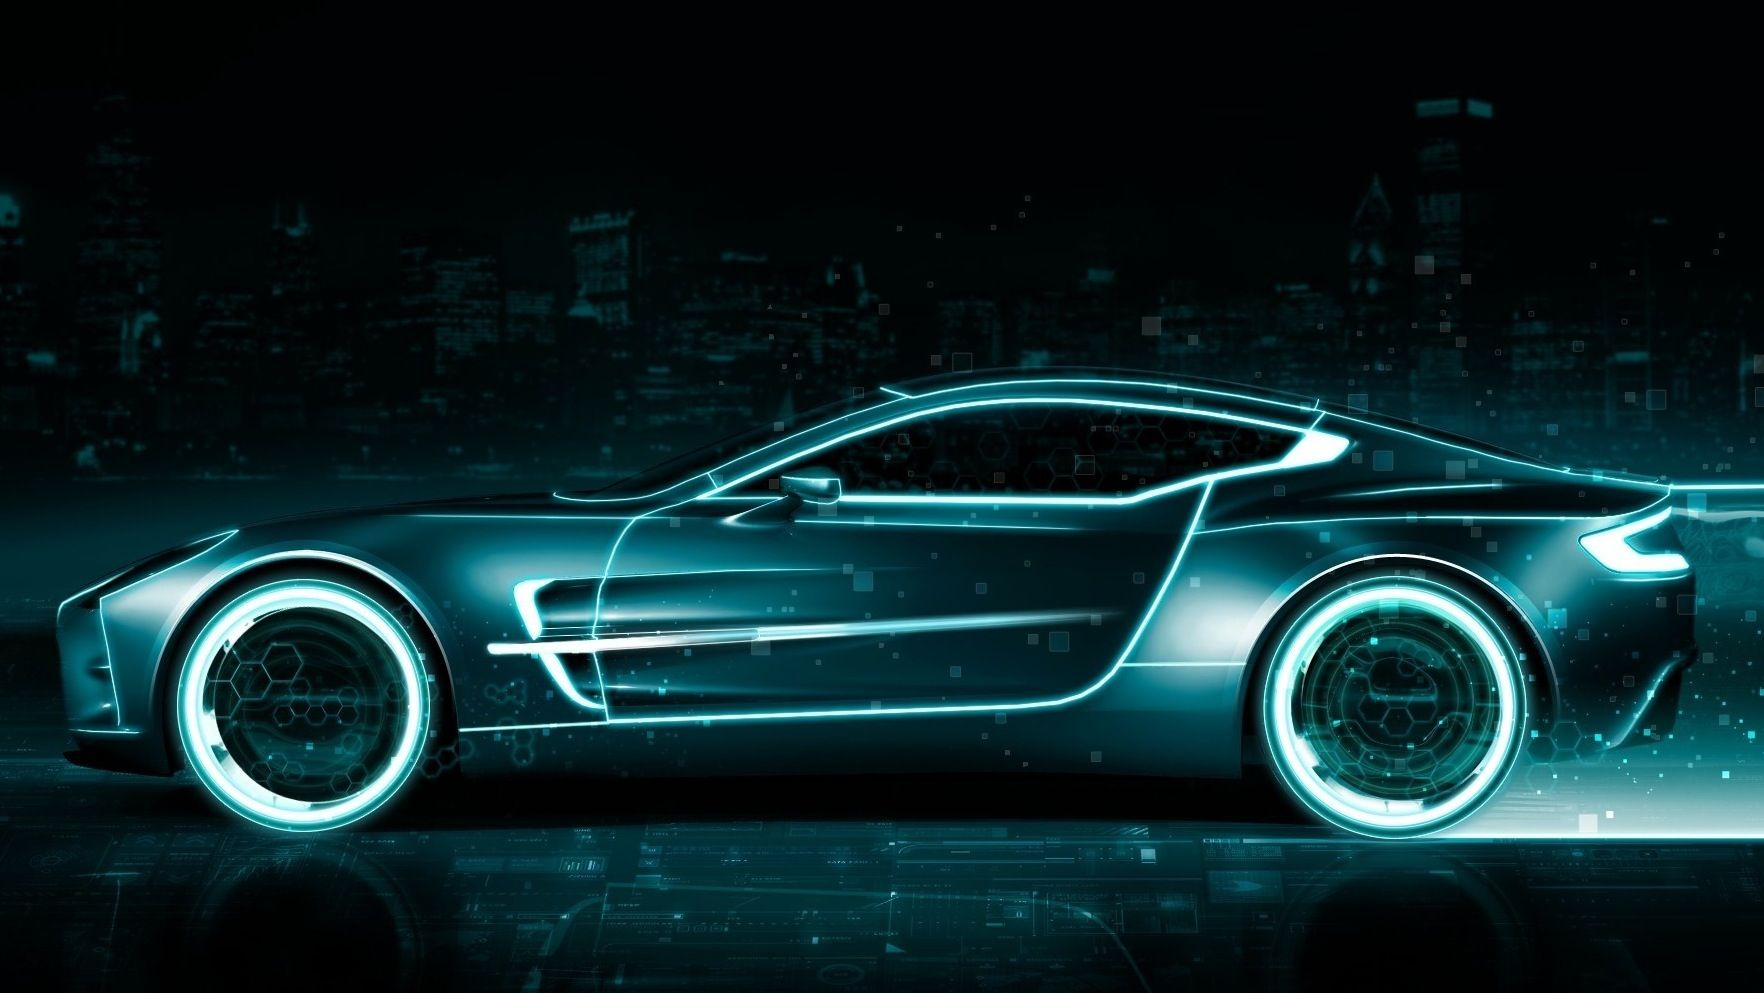 NEON CAR NIFTY NEON Pinterest Neon car, Cars and Planes